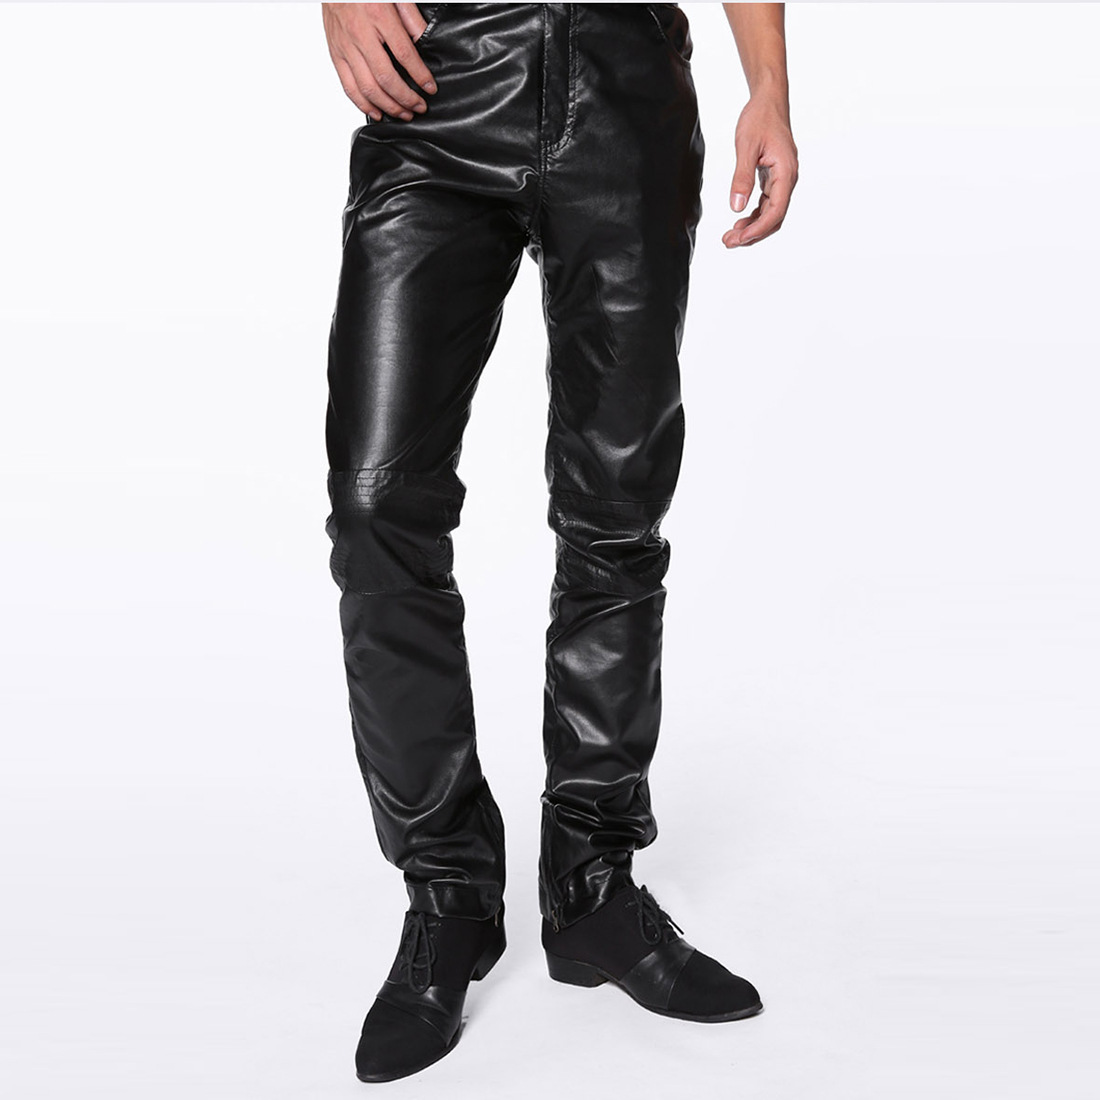 2018 Purchasing Agents Men's Slim Fit Leather Pants Sportsman Men's Trousers Fashion Skinny Pants Boot Pants PK01